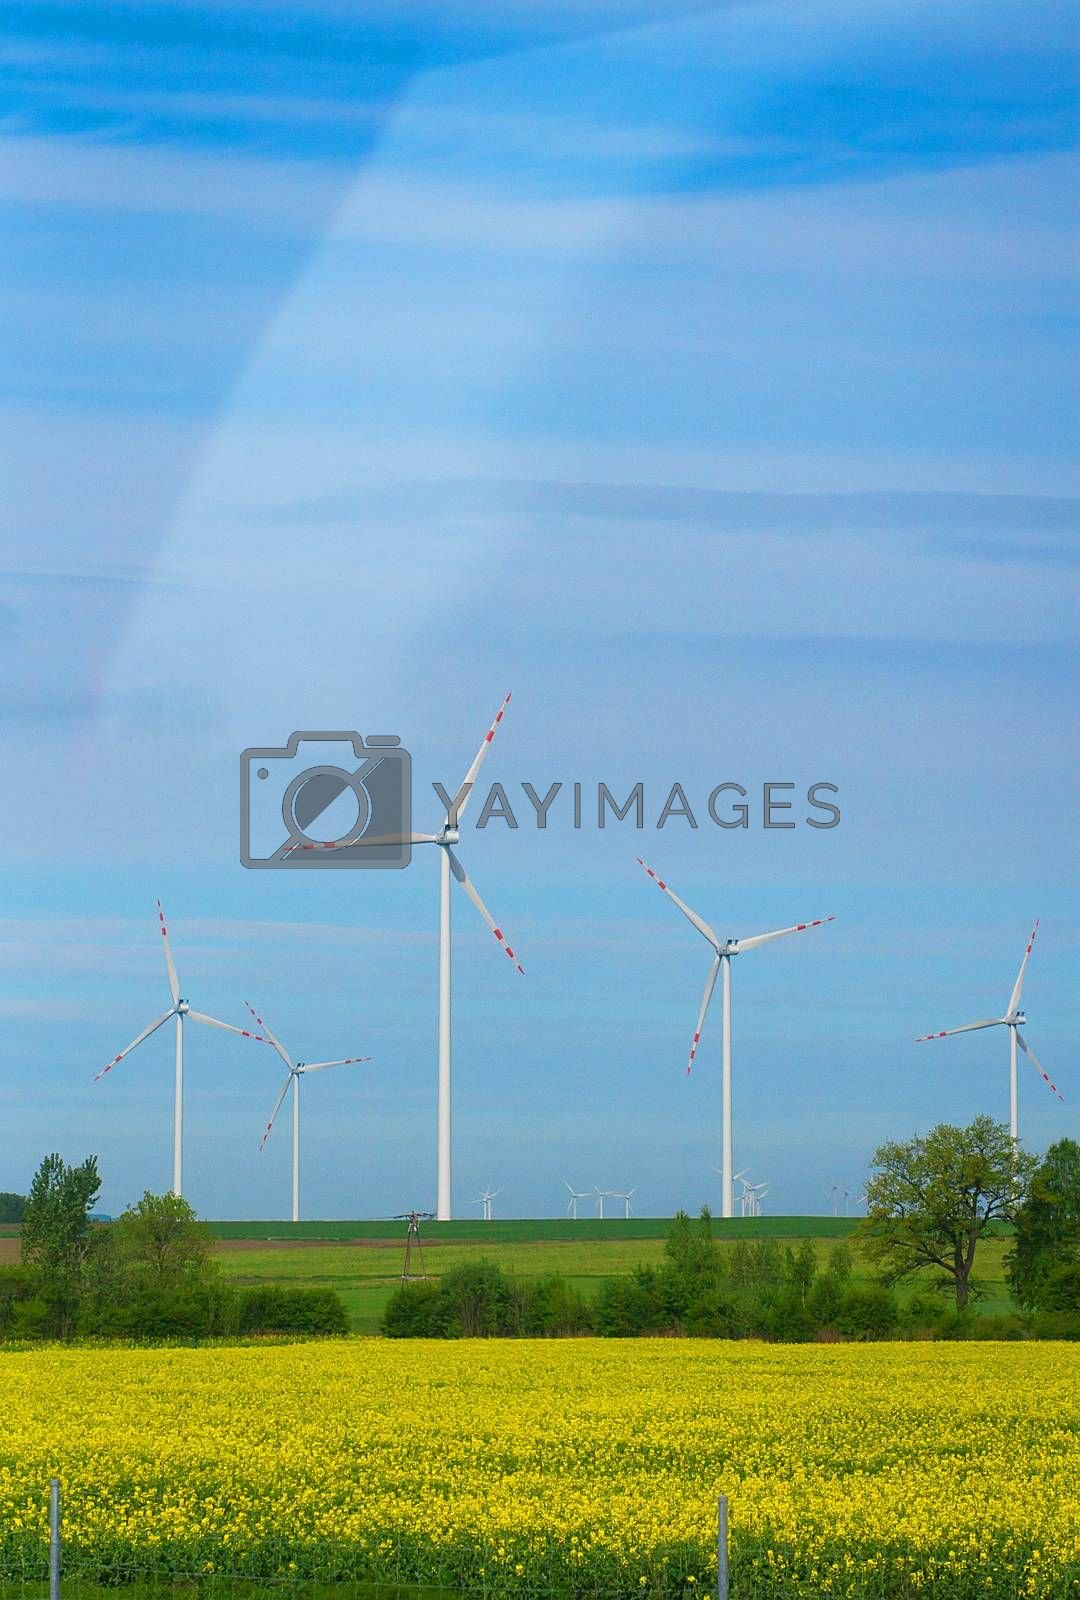 Royalty free image of Eco power, wind turbines by sfinks